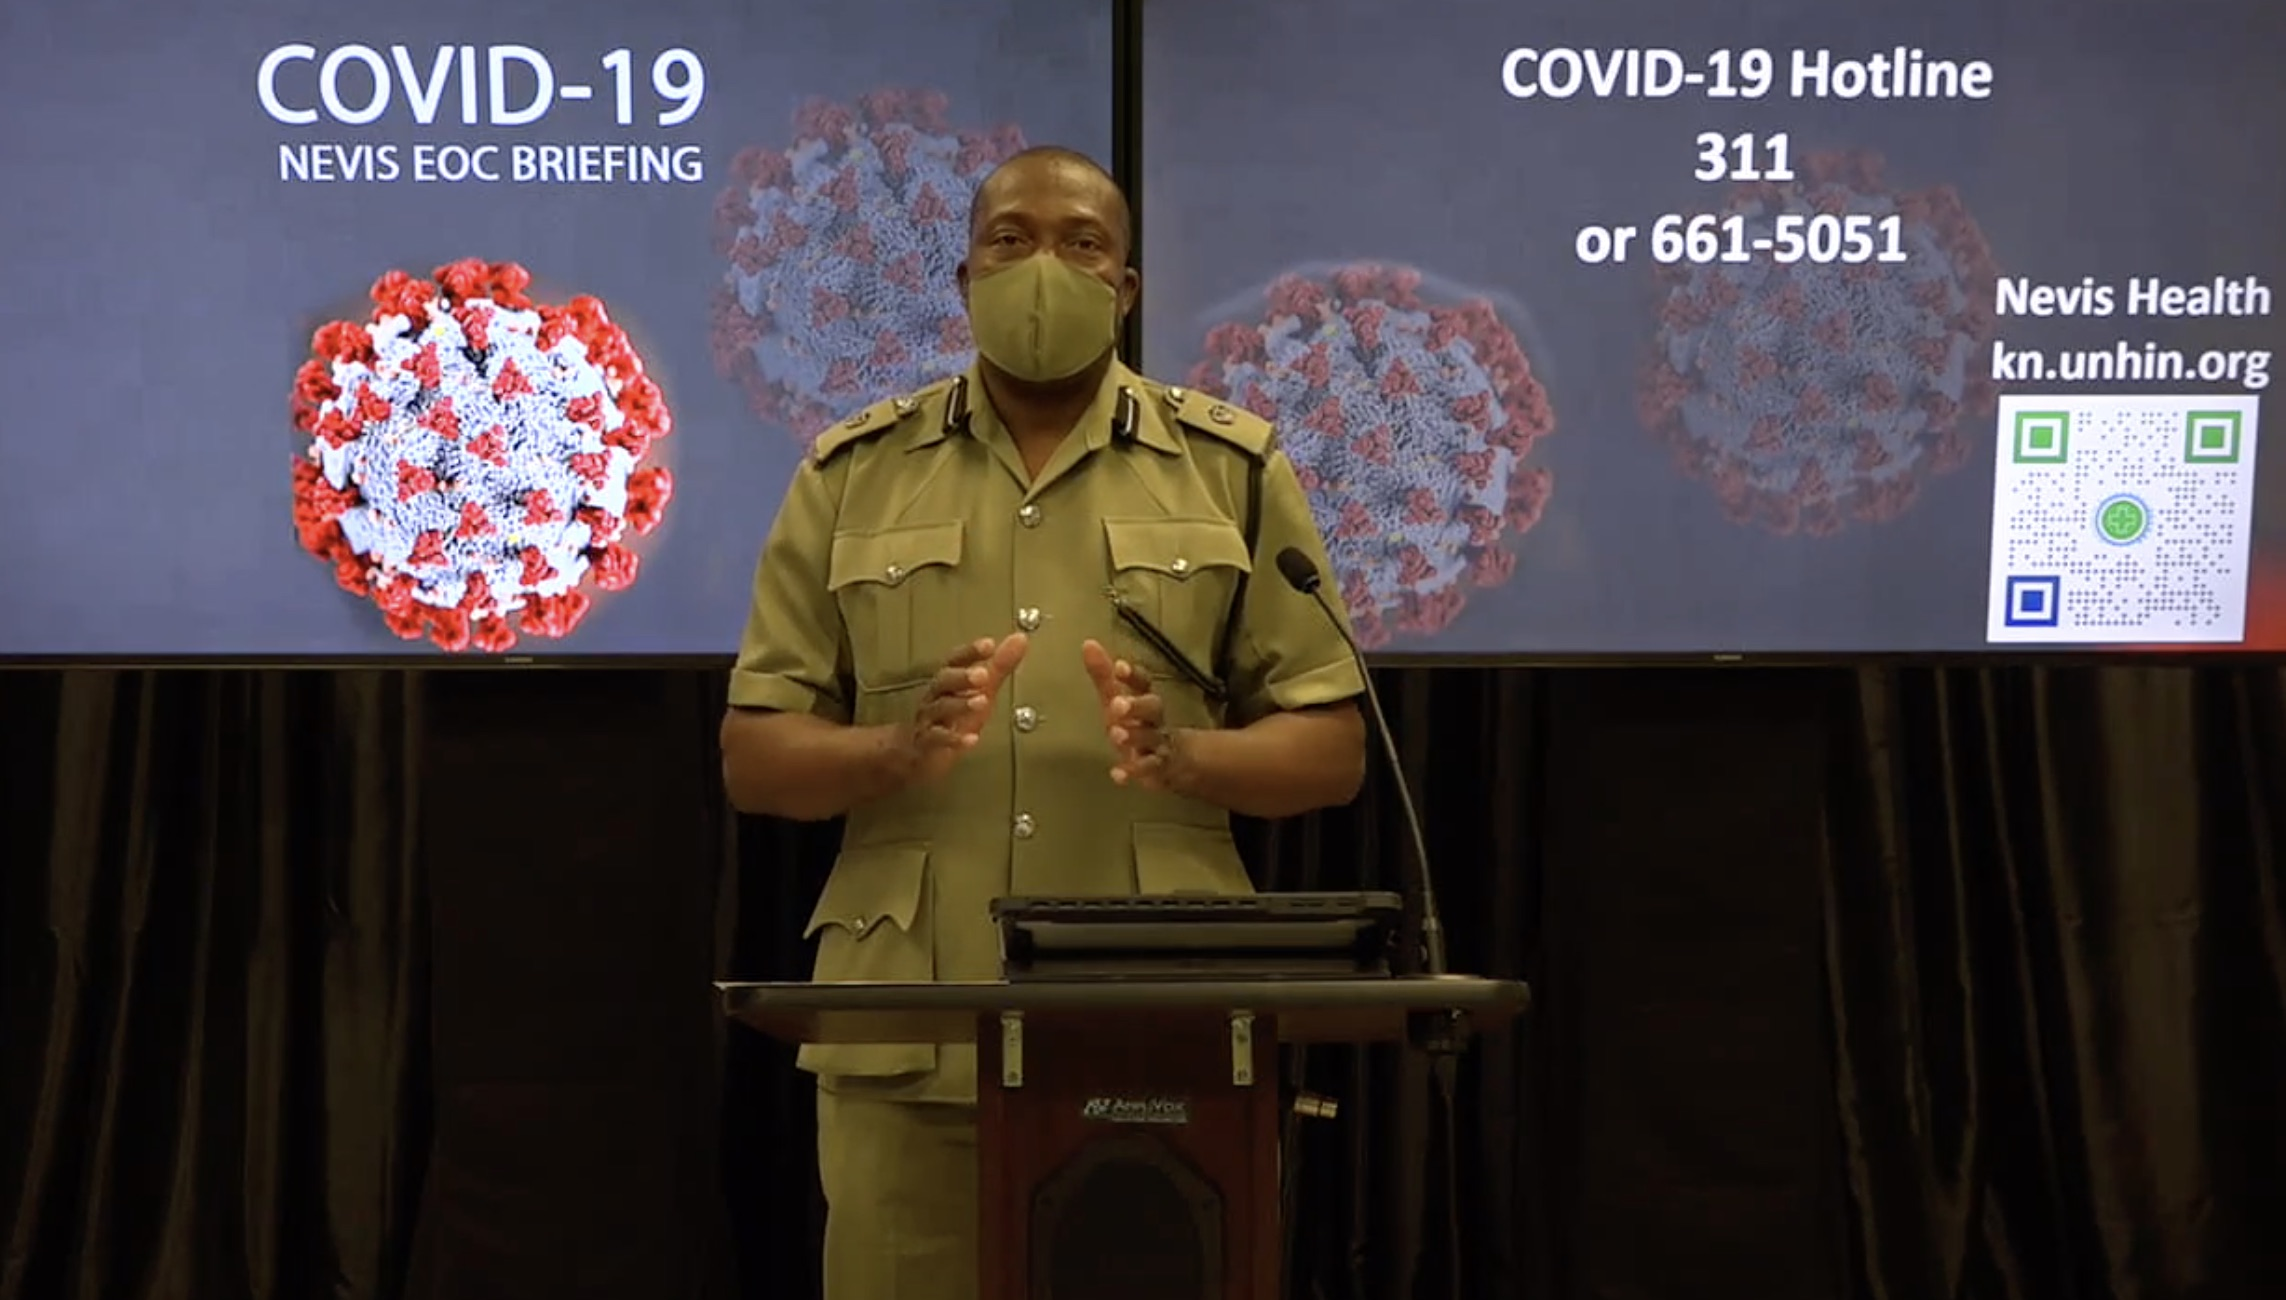 Superintendent Lyndon David, Divisional Commander of the Nevis Division of the Royal St. Christopher and Nevis Police Force, speaking at the Nevis COVID-19 Emergency Operations Centre Briefing on November 02, 2020